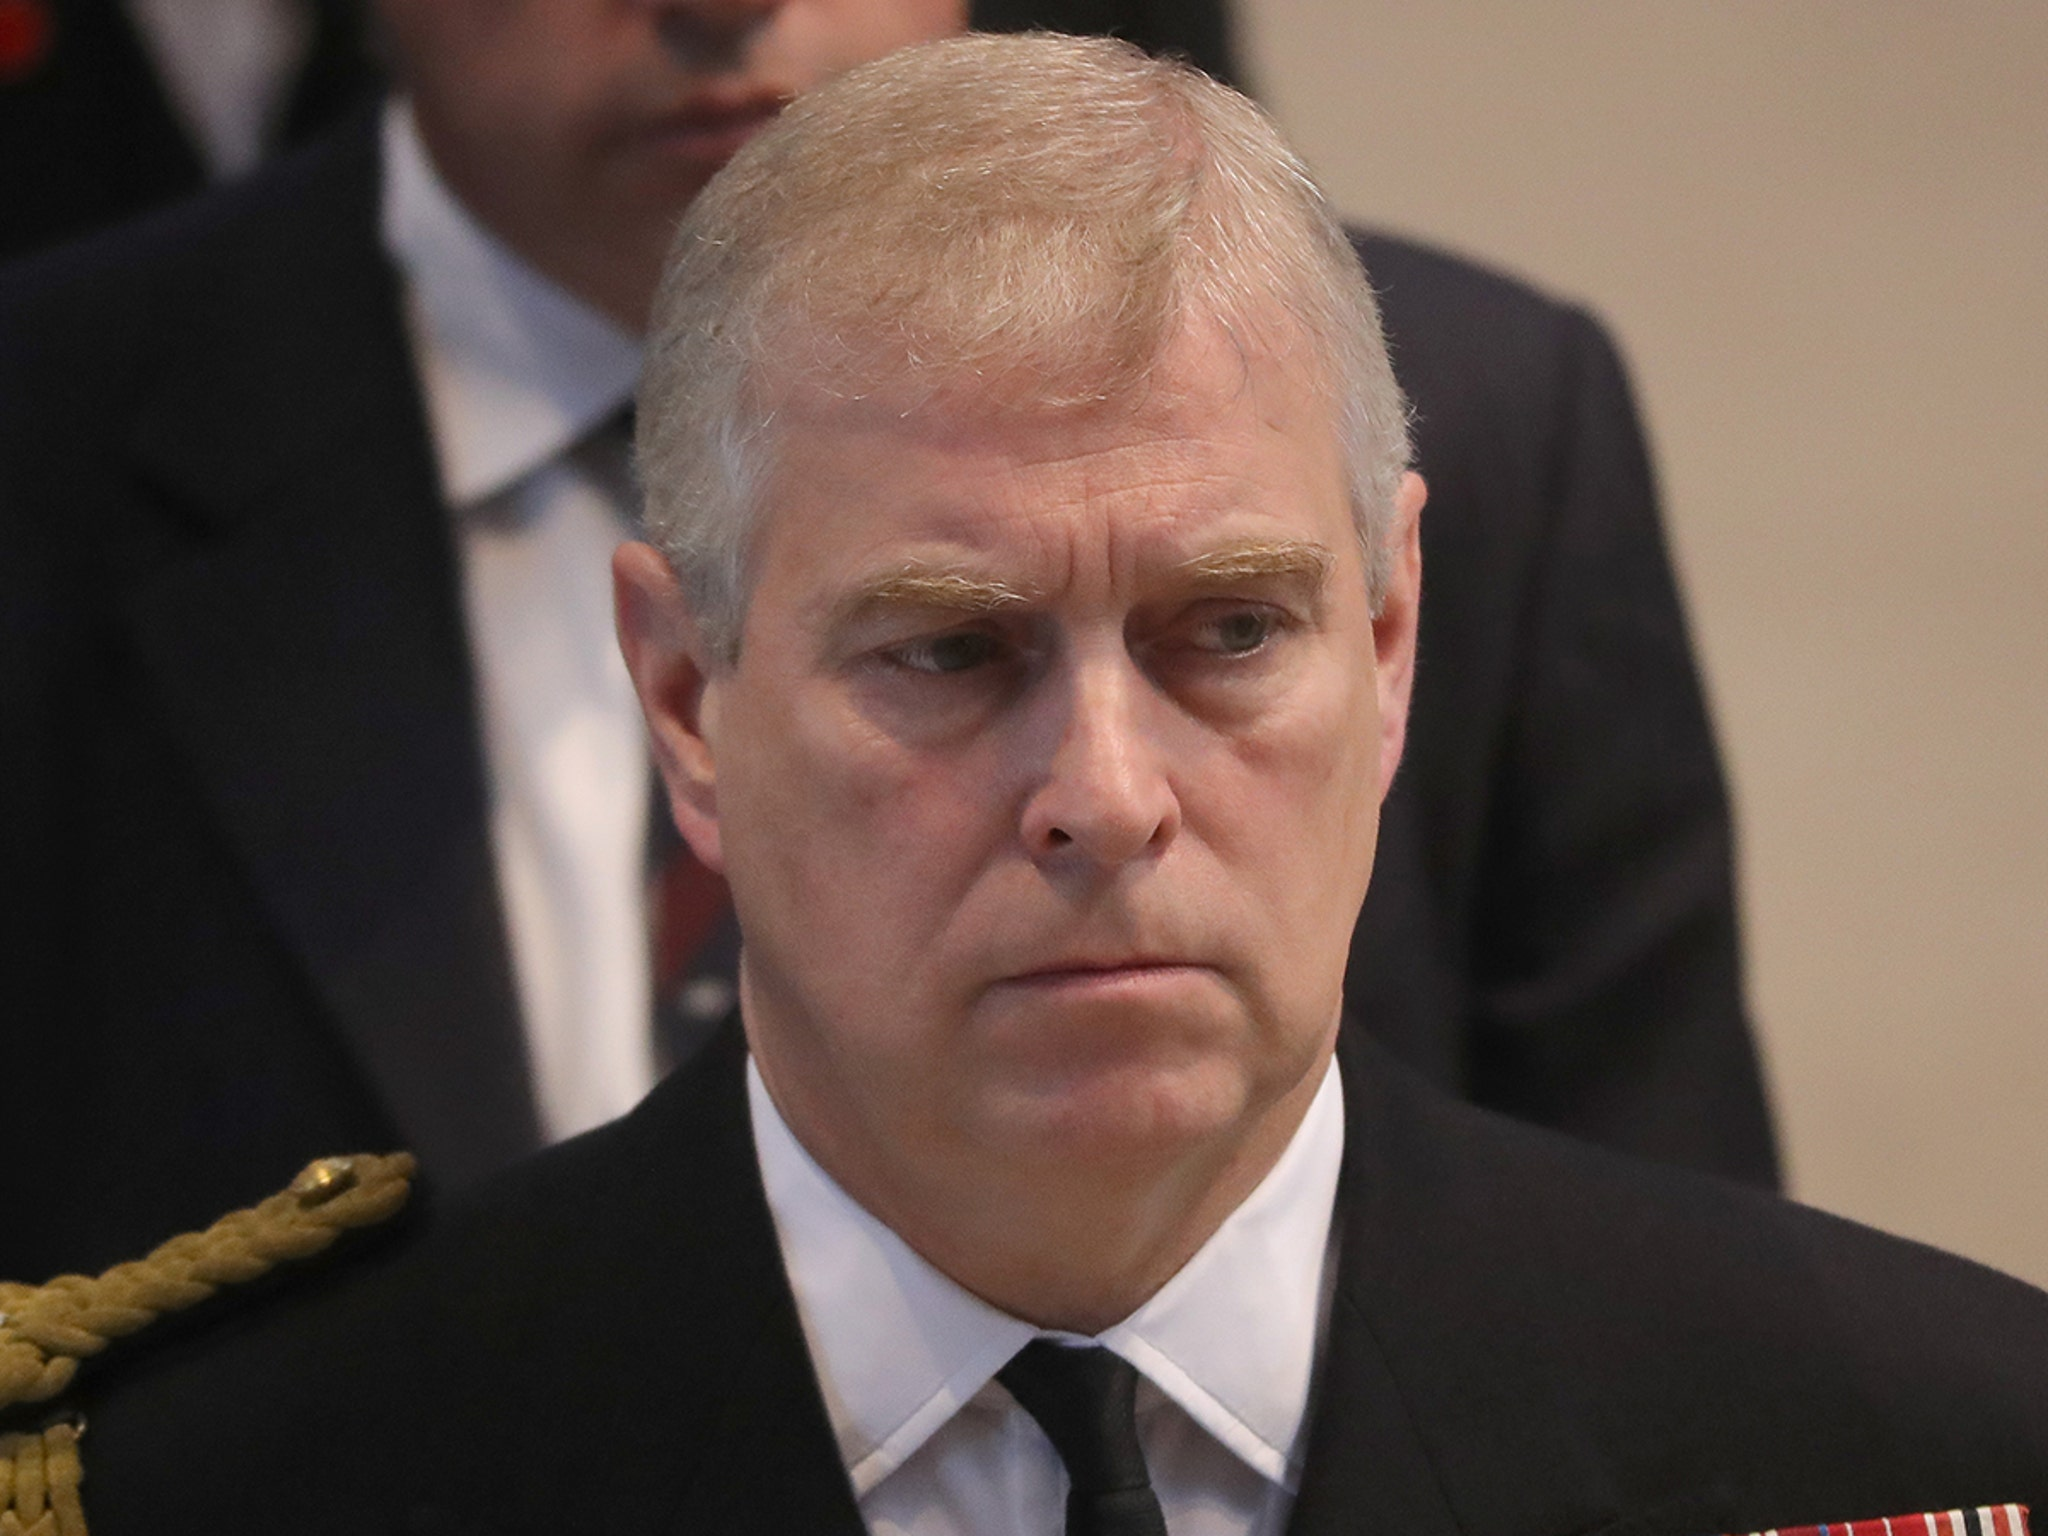 Prince Andrew Accused Of Using N Word By Former Government Adviser